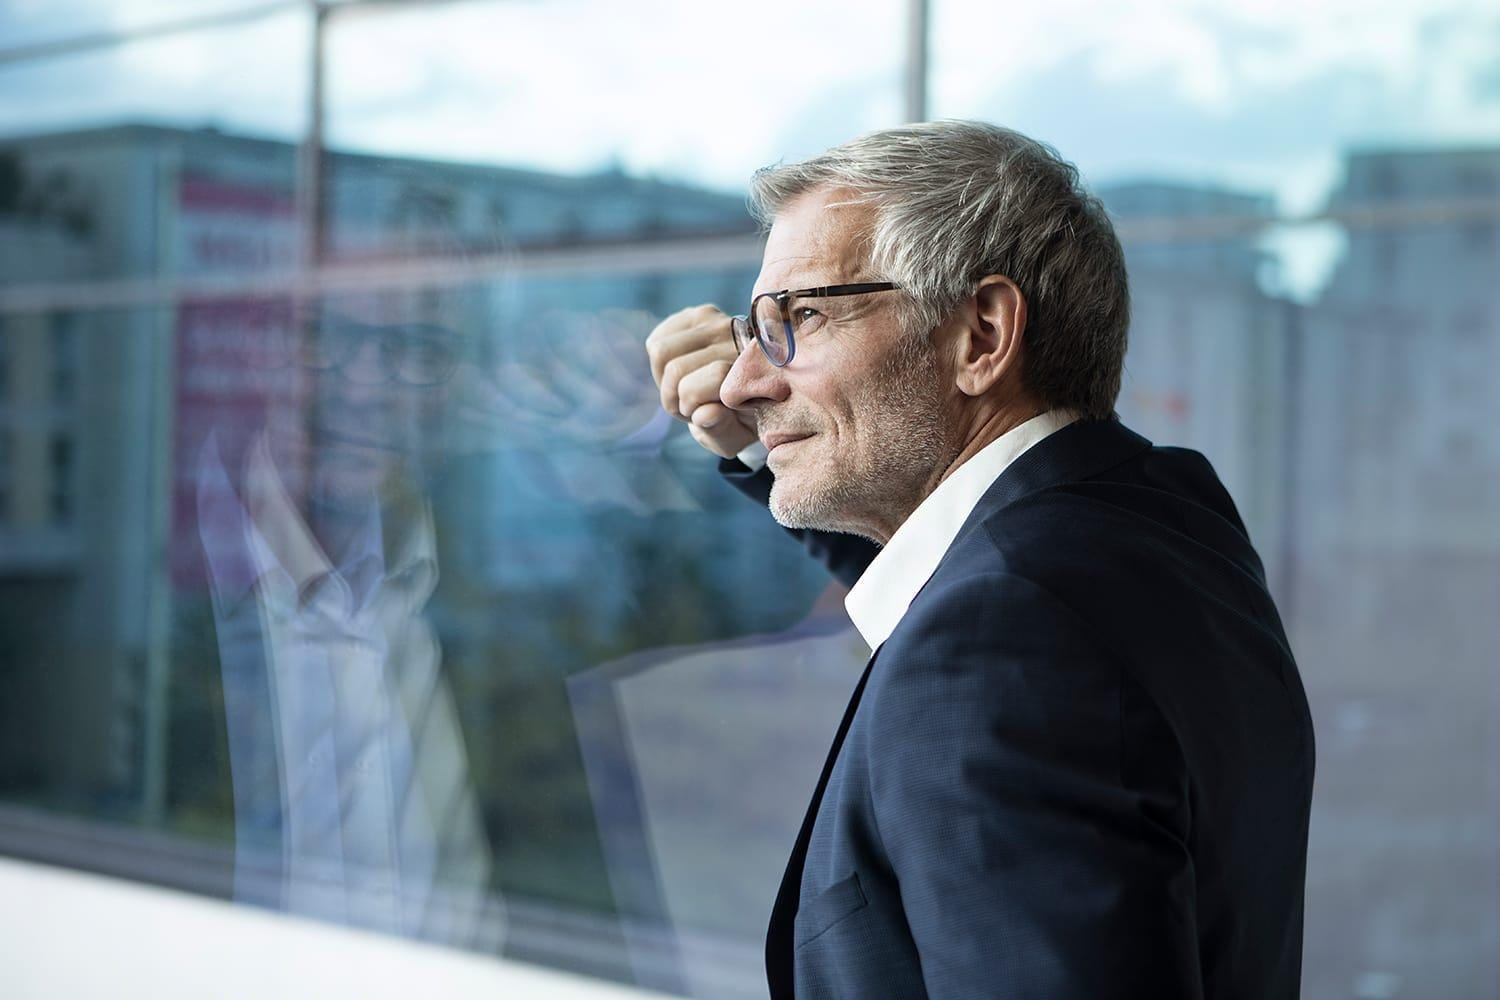 Confident businessman looking out of window